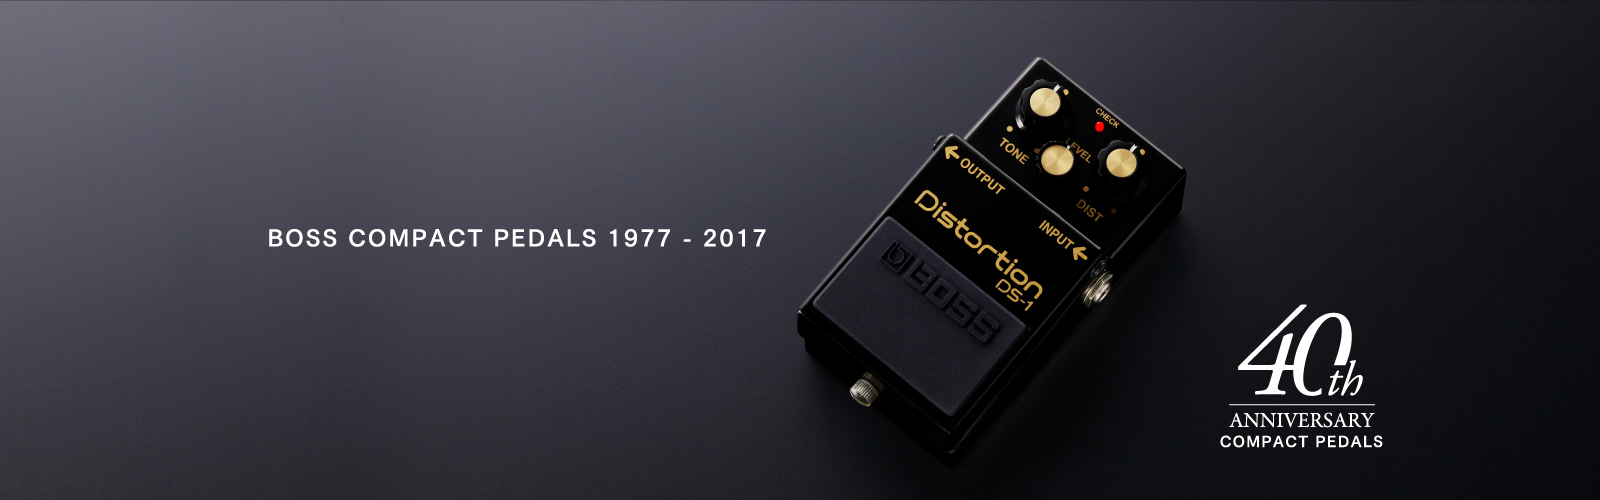 BOSS COMPACT PEDALS 1977 - 2017